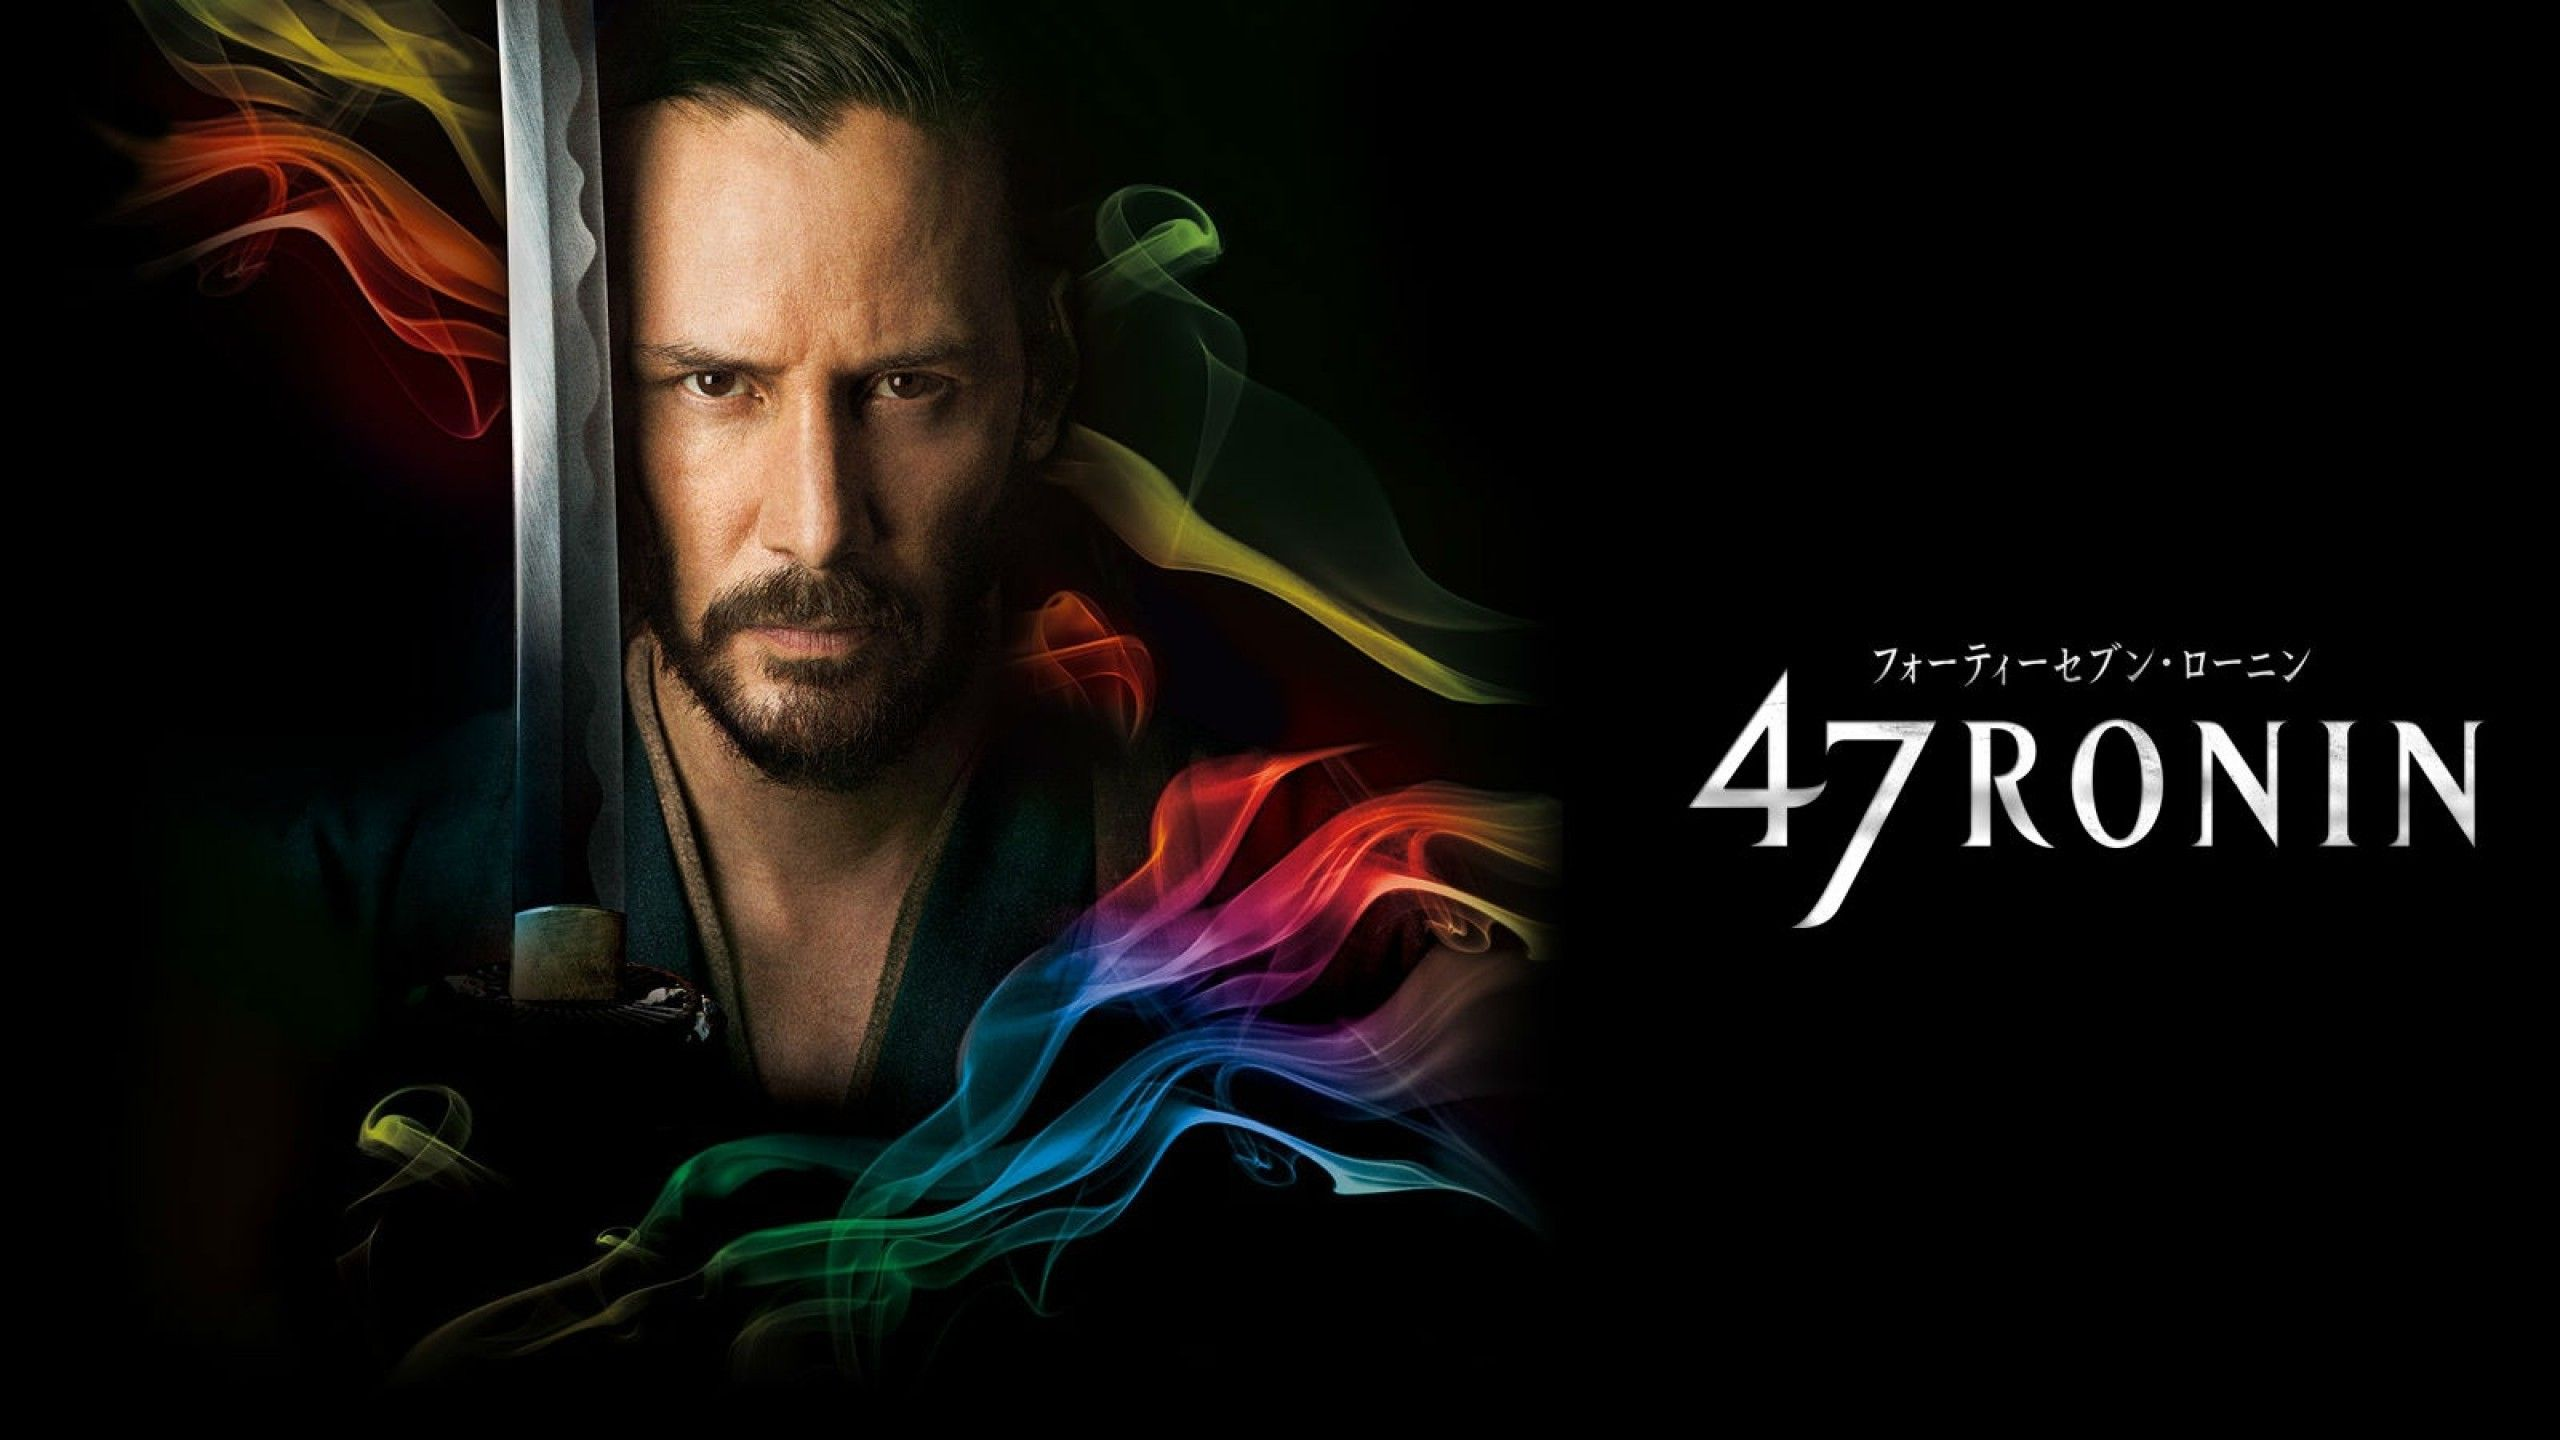 47 ronin movies download